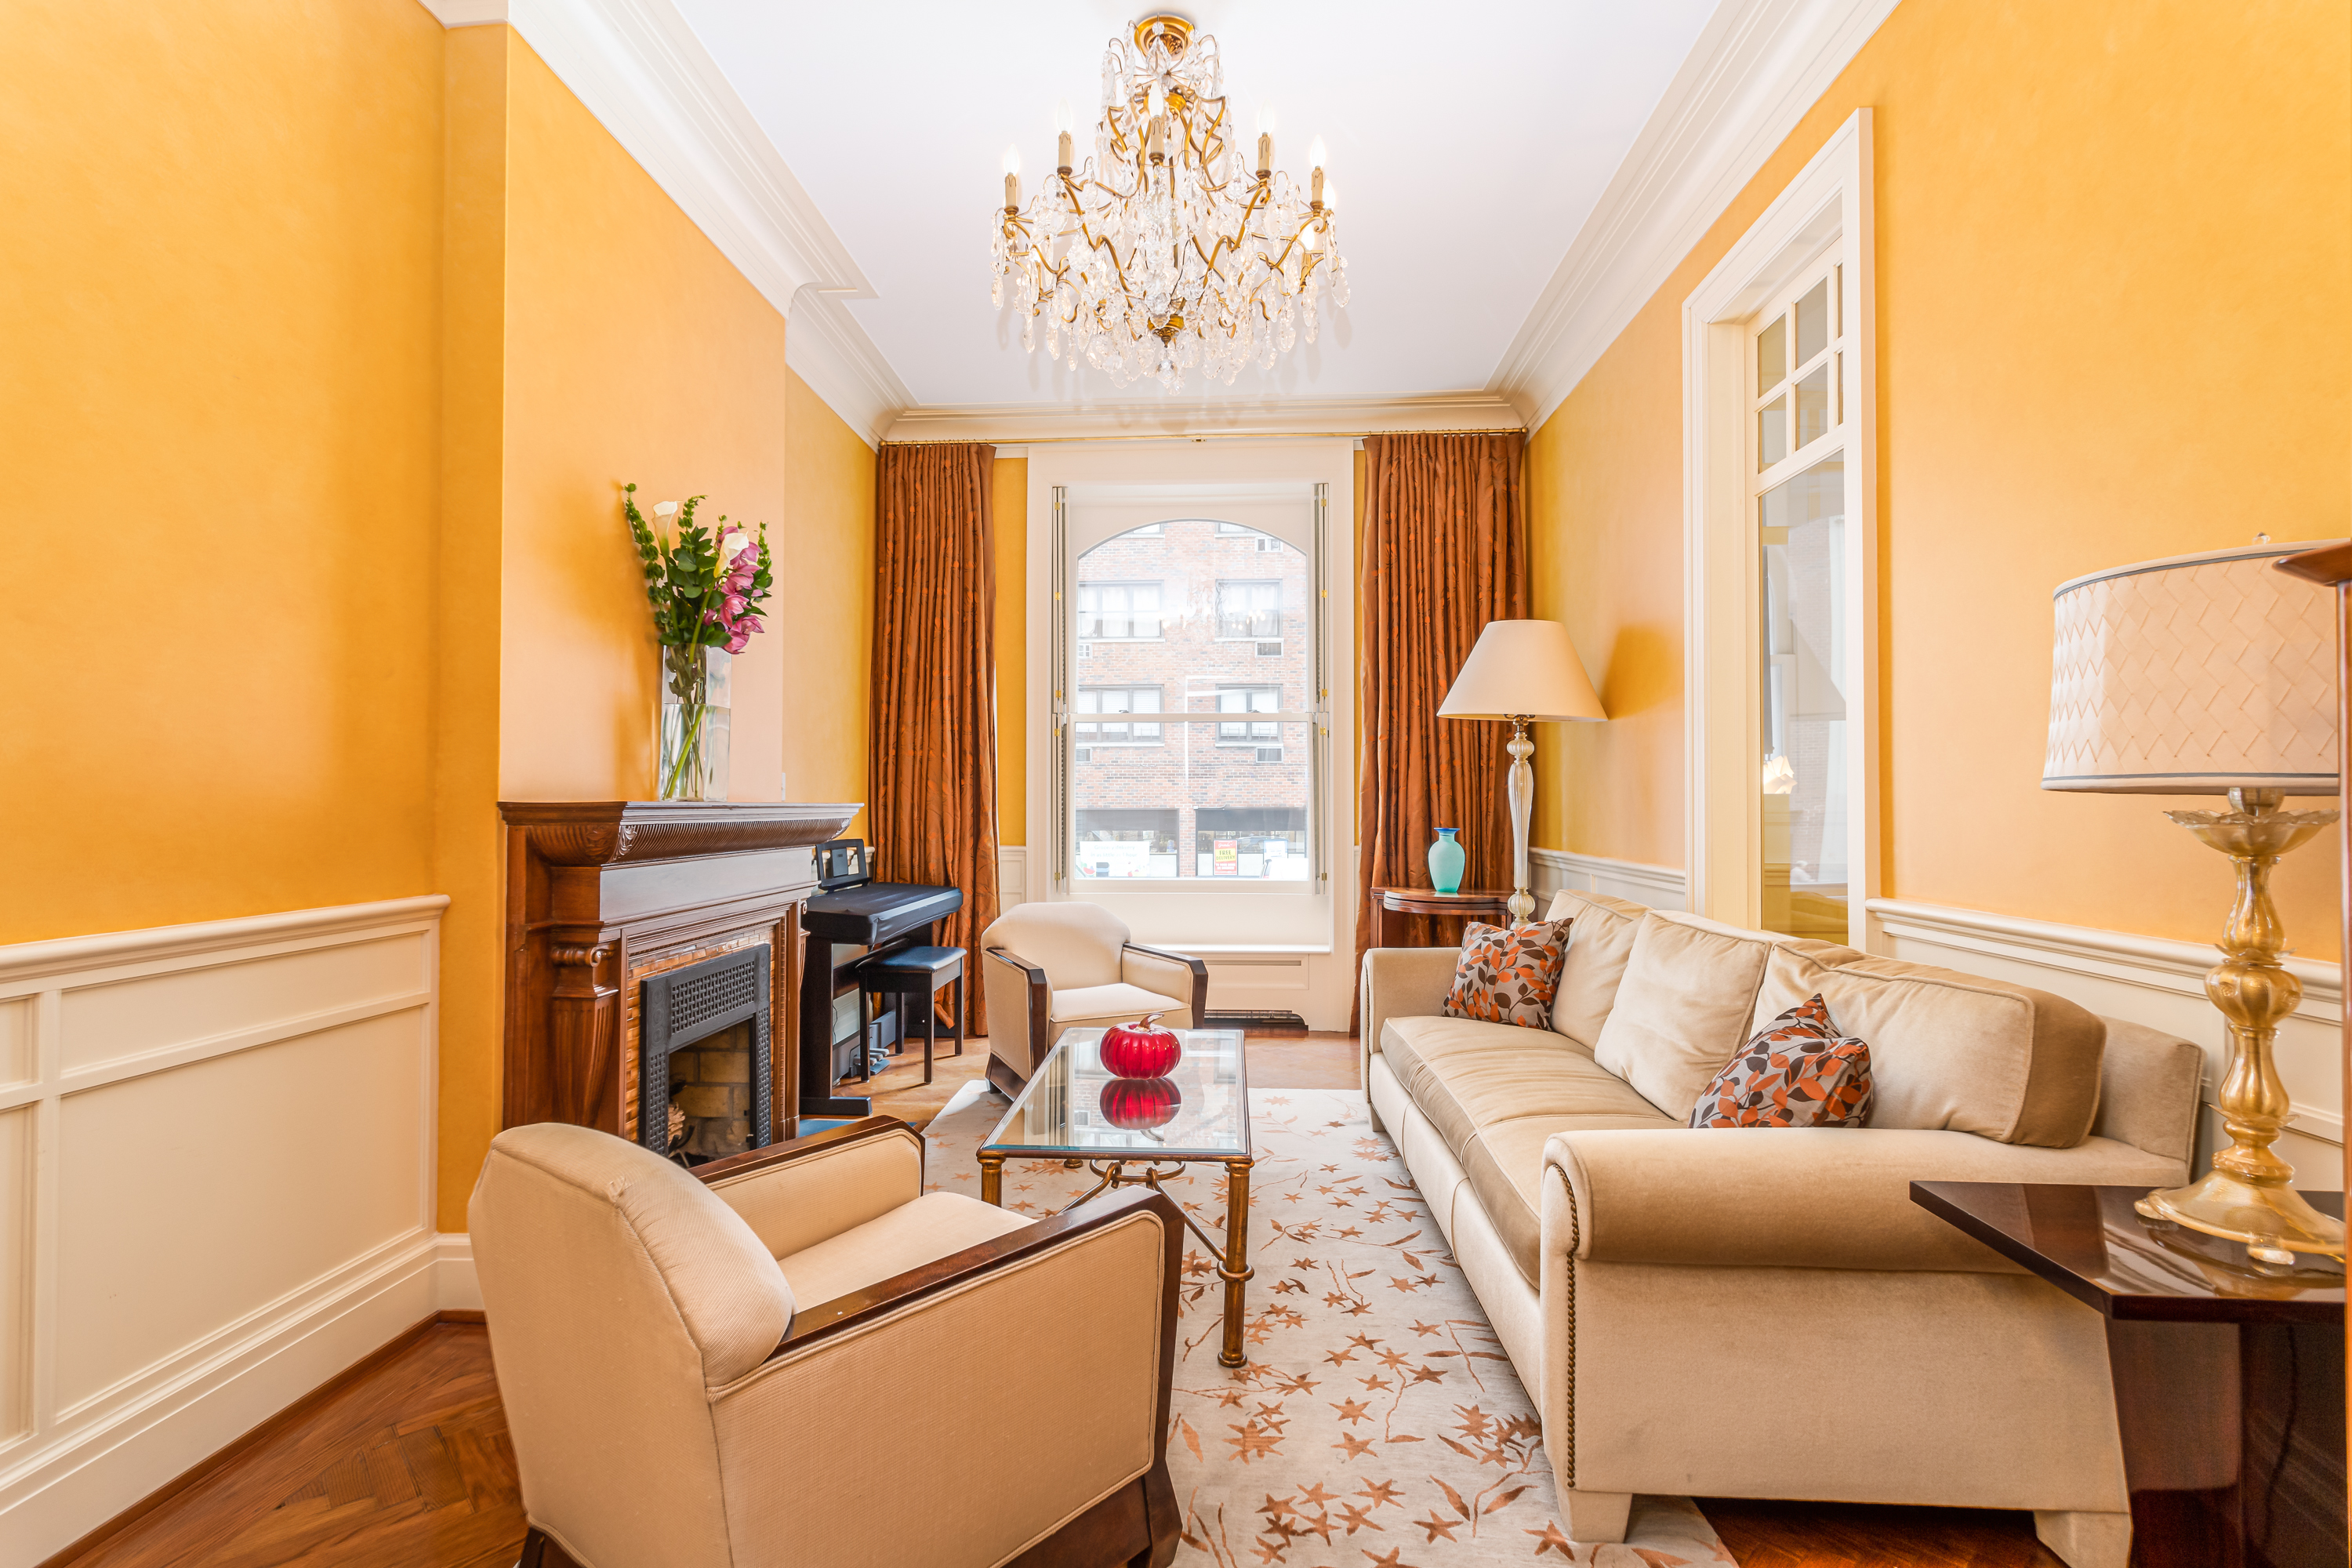 A living area with three couches, a glass coffee table, a fireplace, a chandelier, and yellow walls.